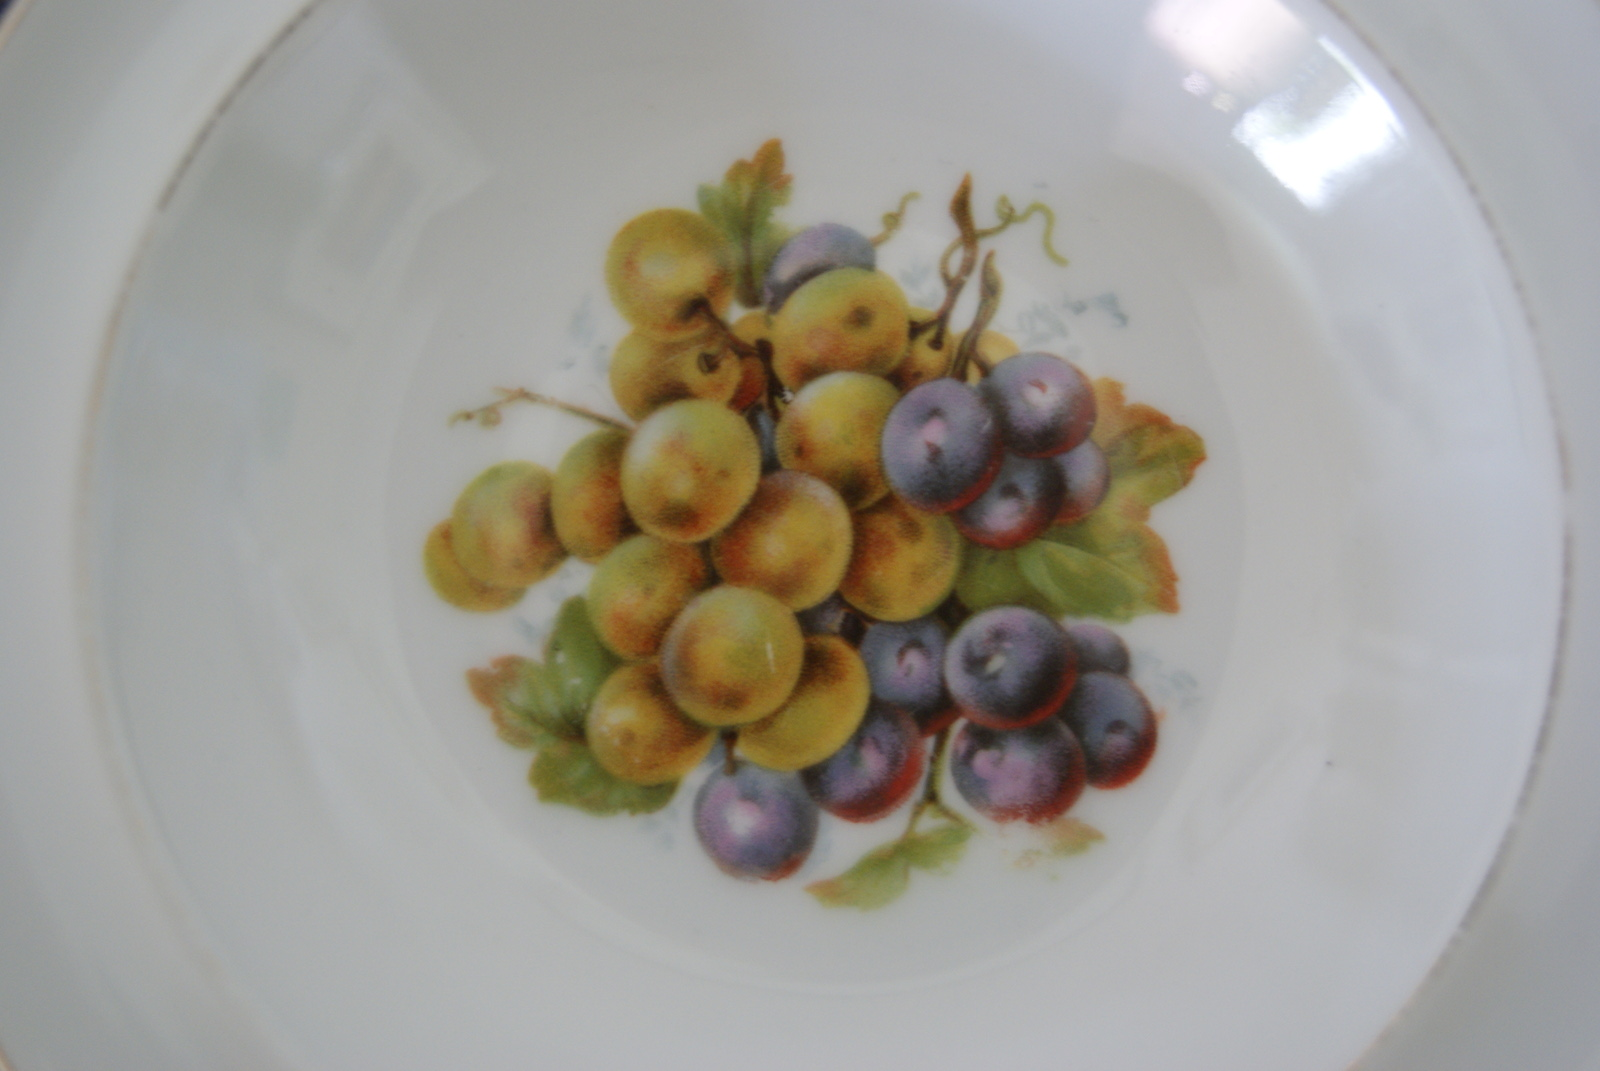 Waldenburg - Altwasser bowl with grapes 1928